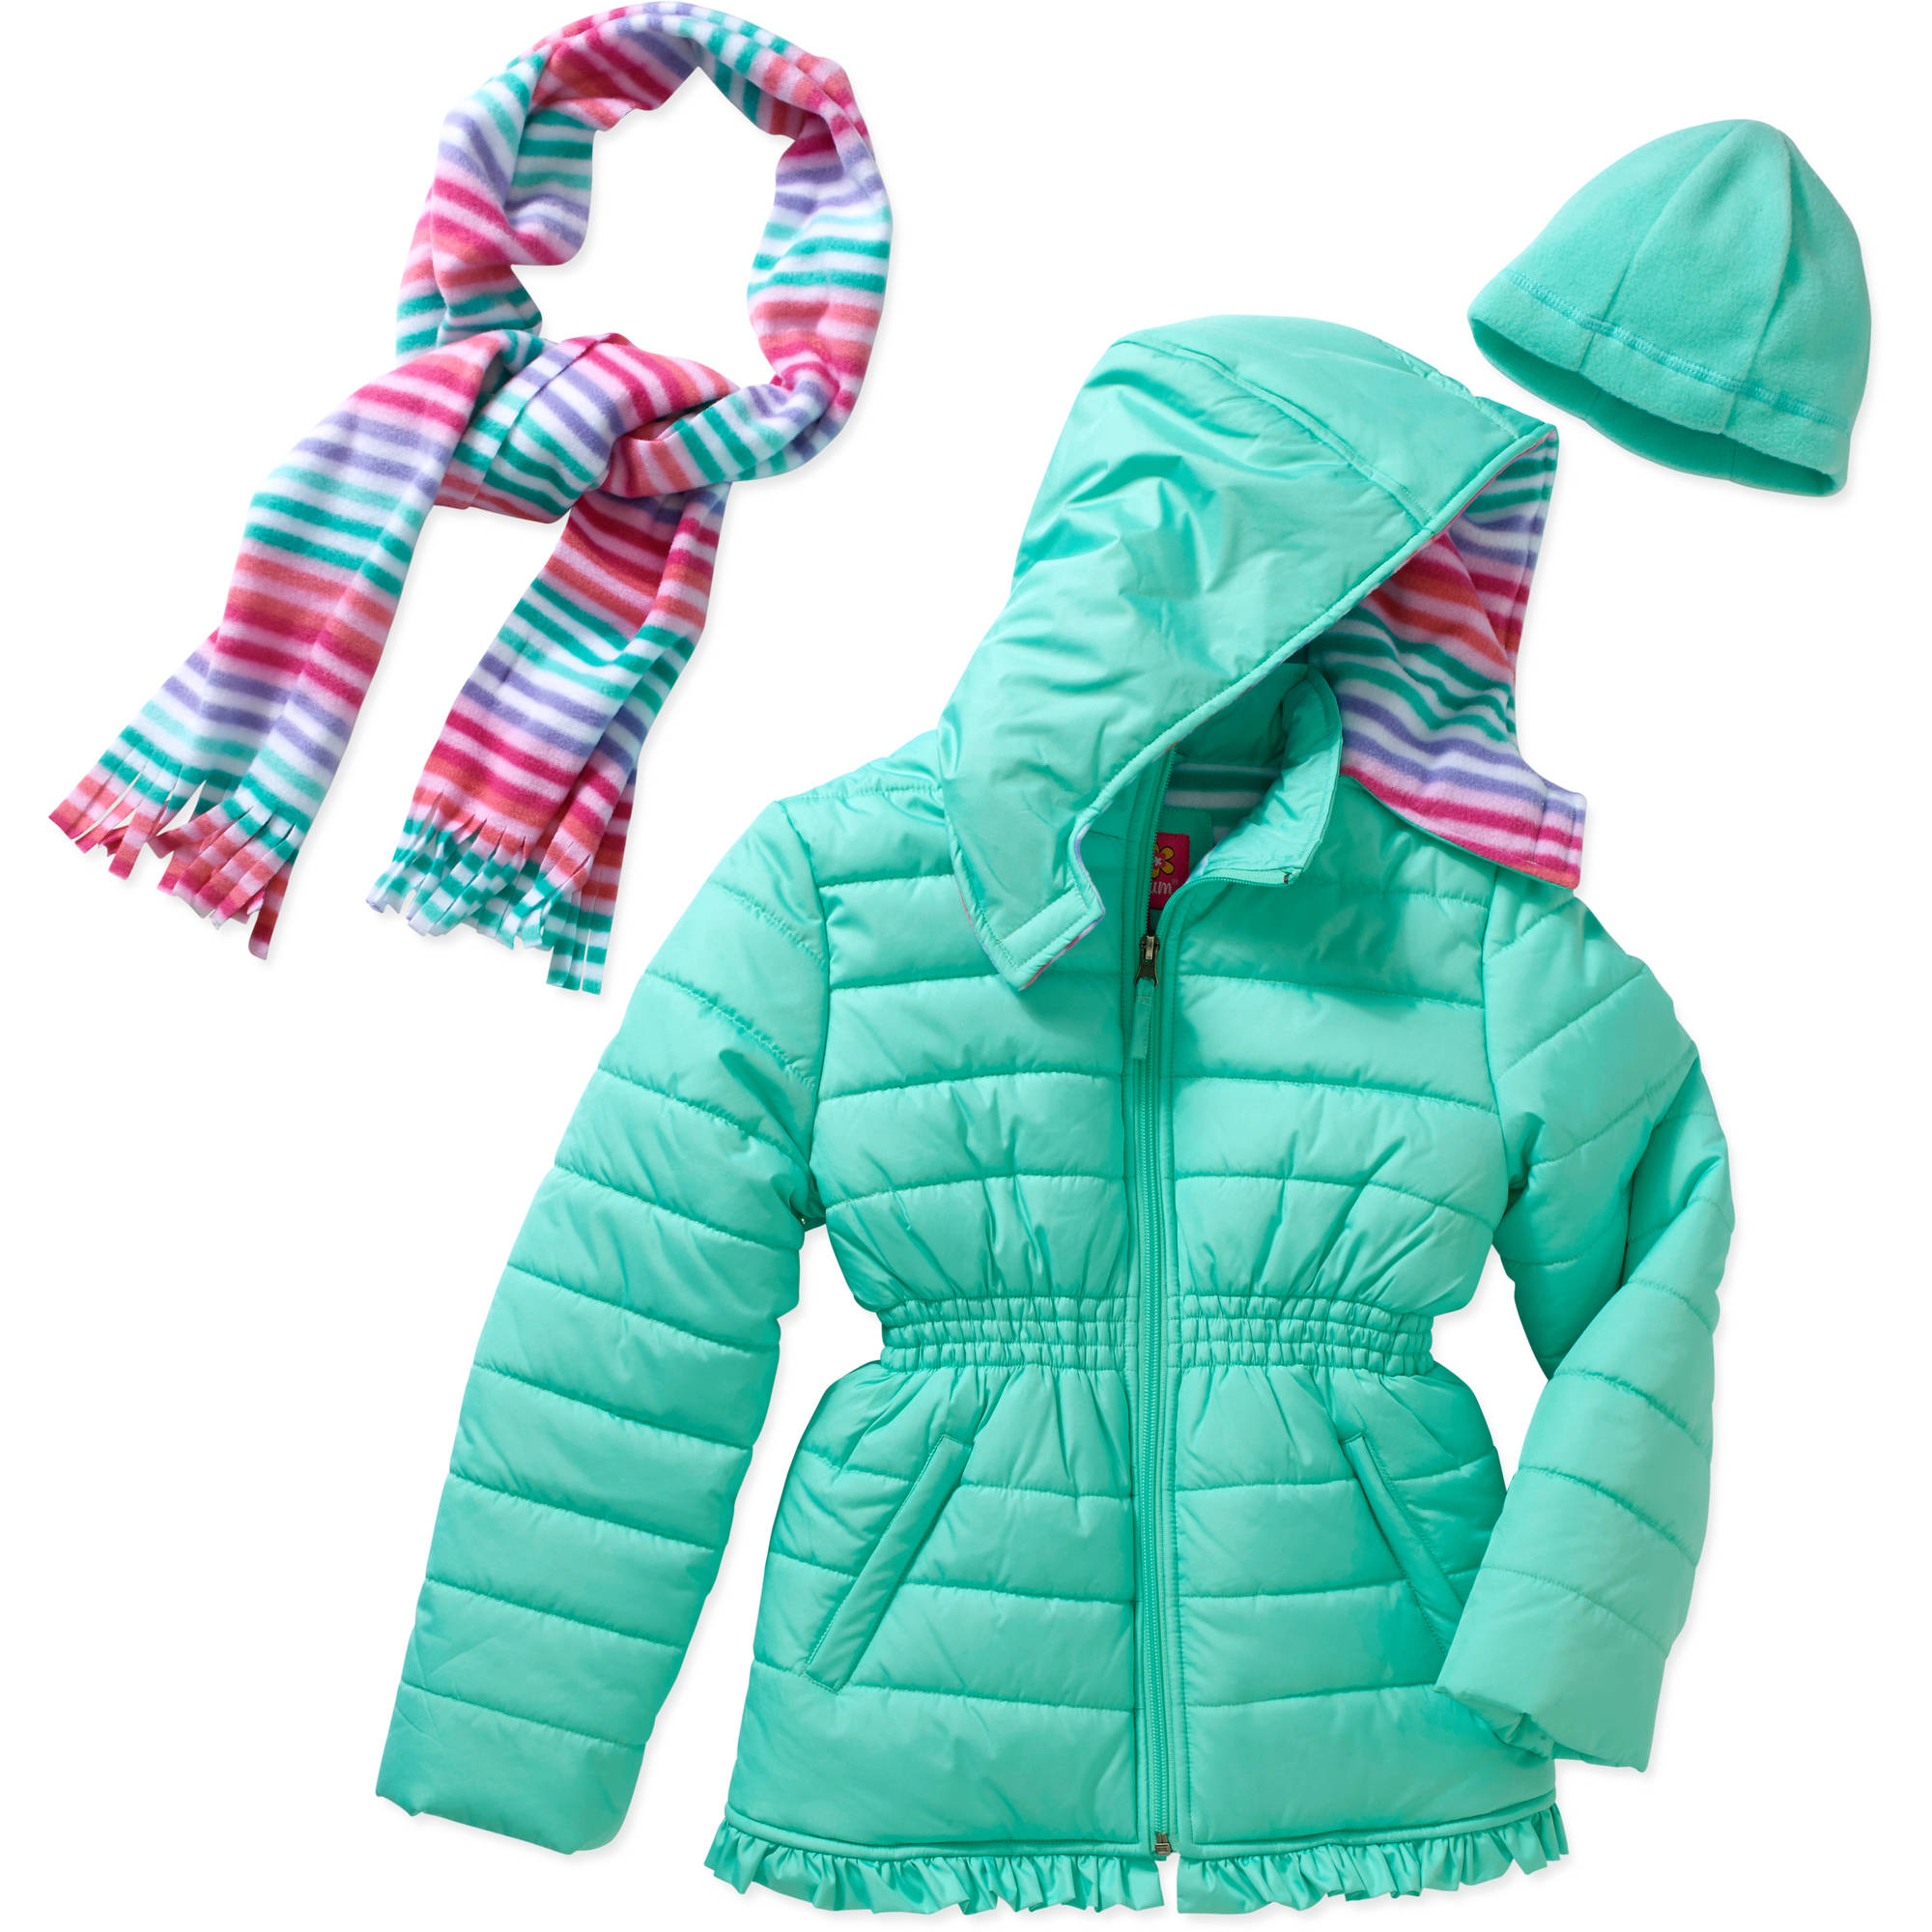 Pink Platinum Girls' Puffer Jacket with Pockets, Hood, and Scarf